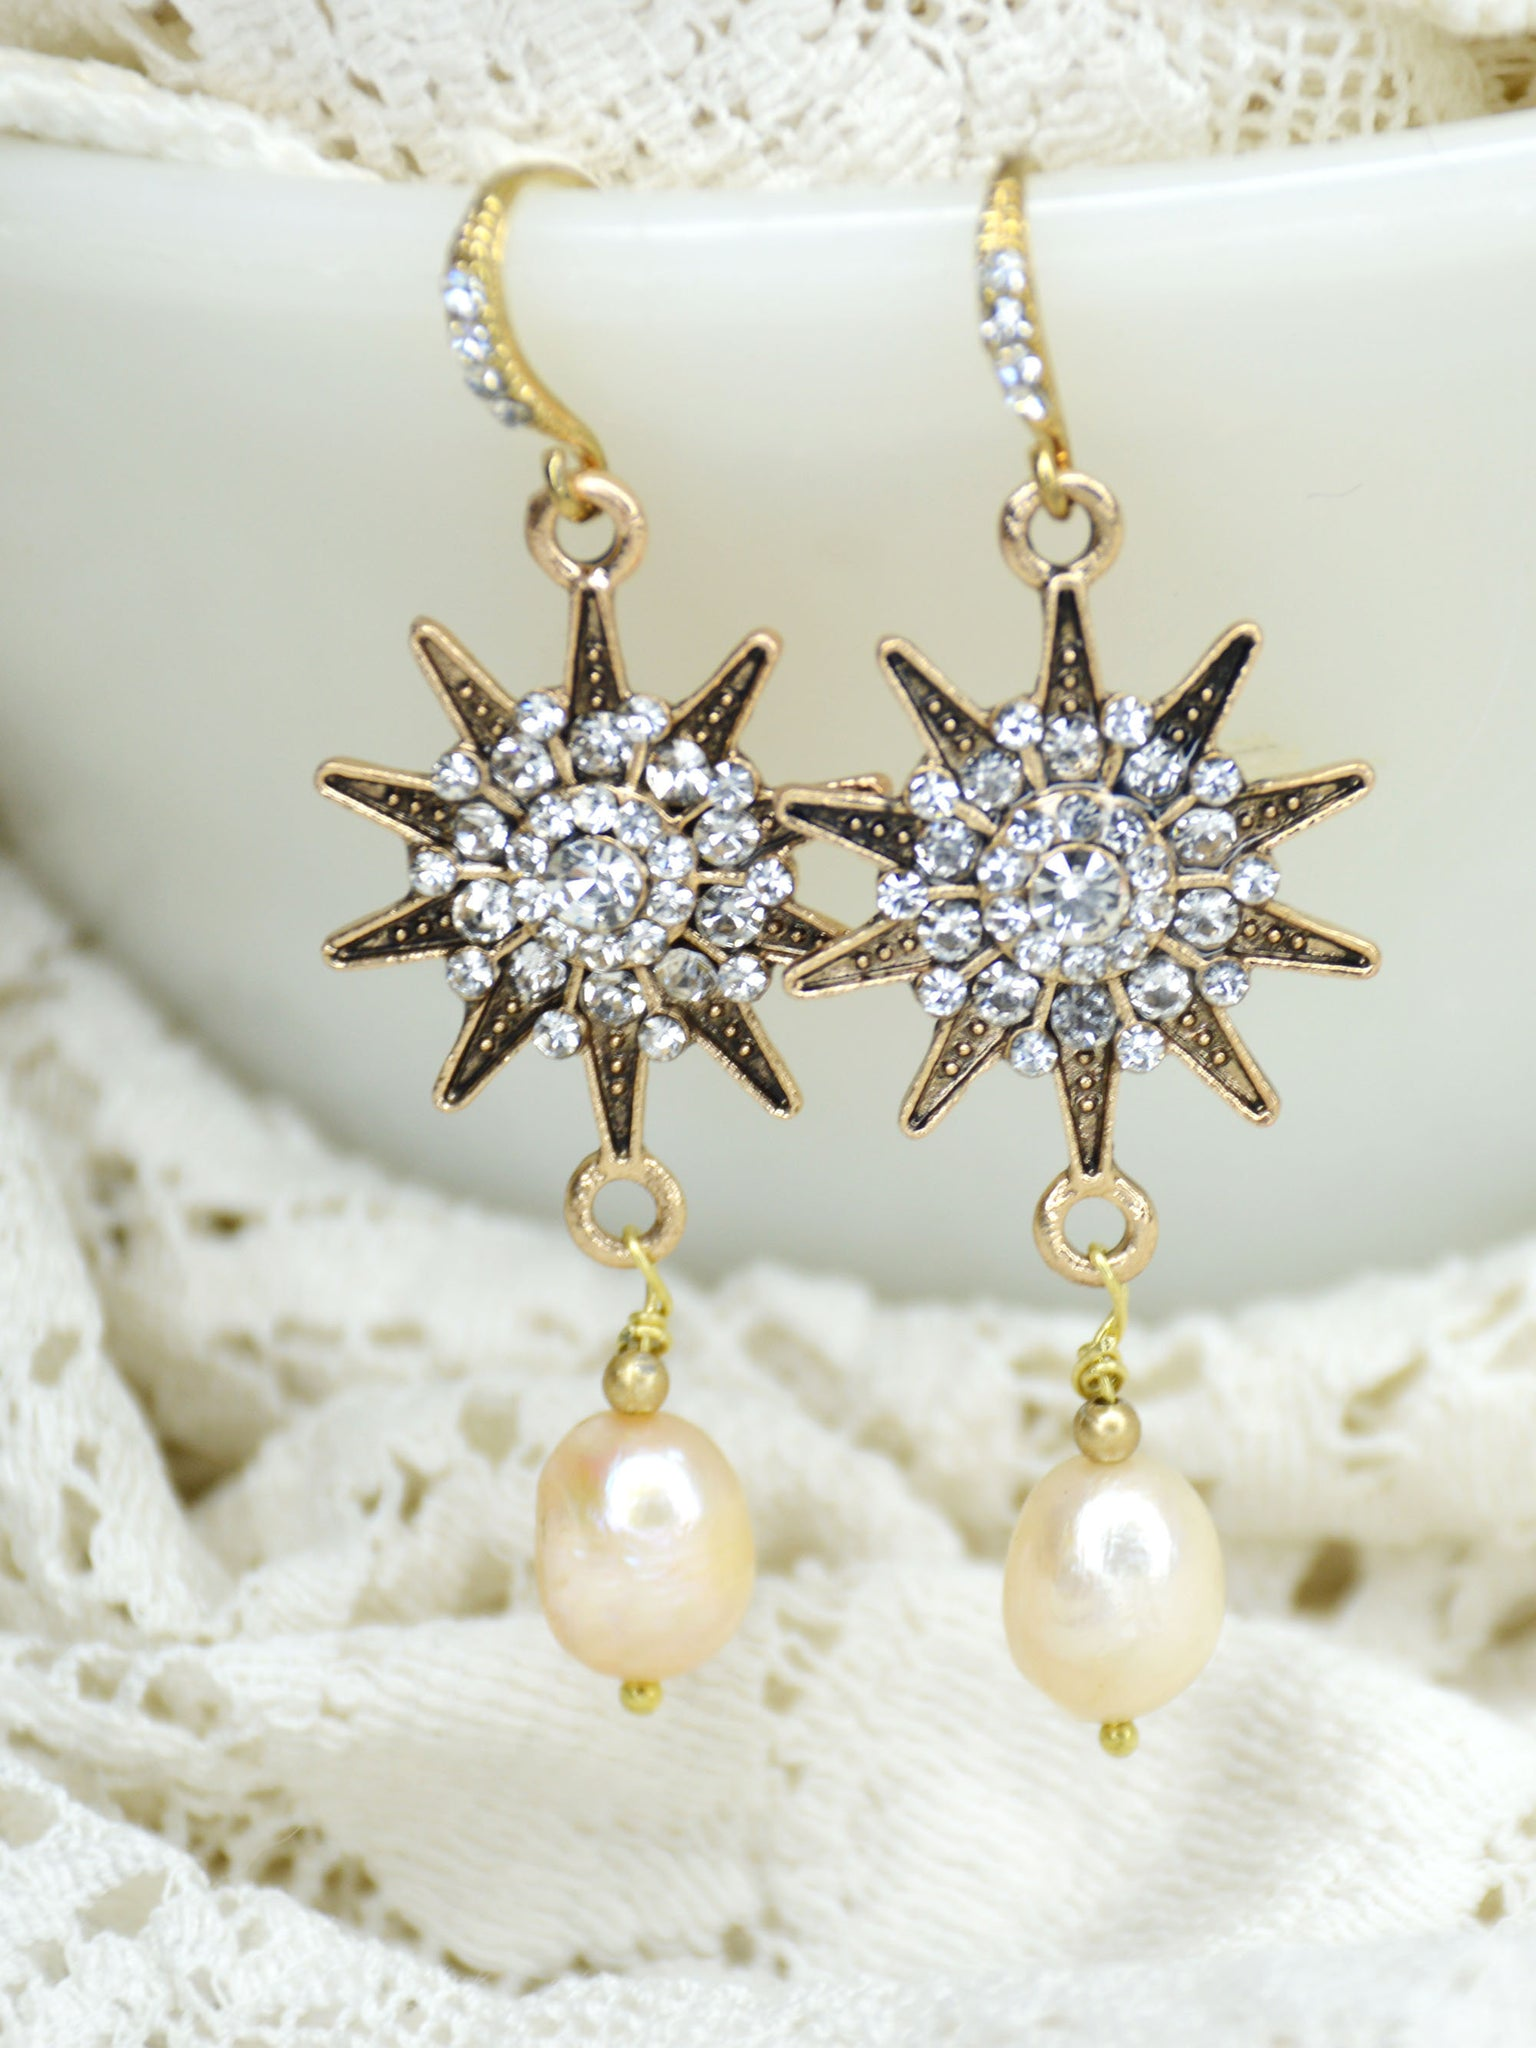 gold, rhinestone, and pearl drop earrings with sunburst